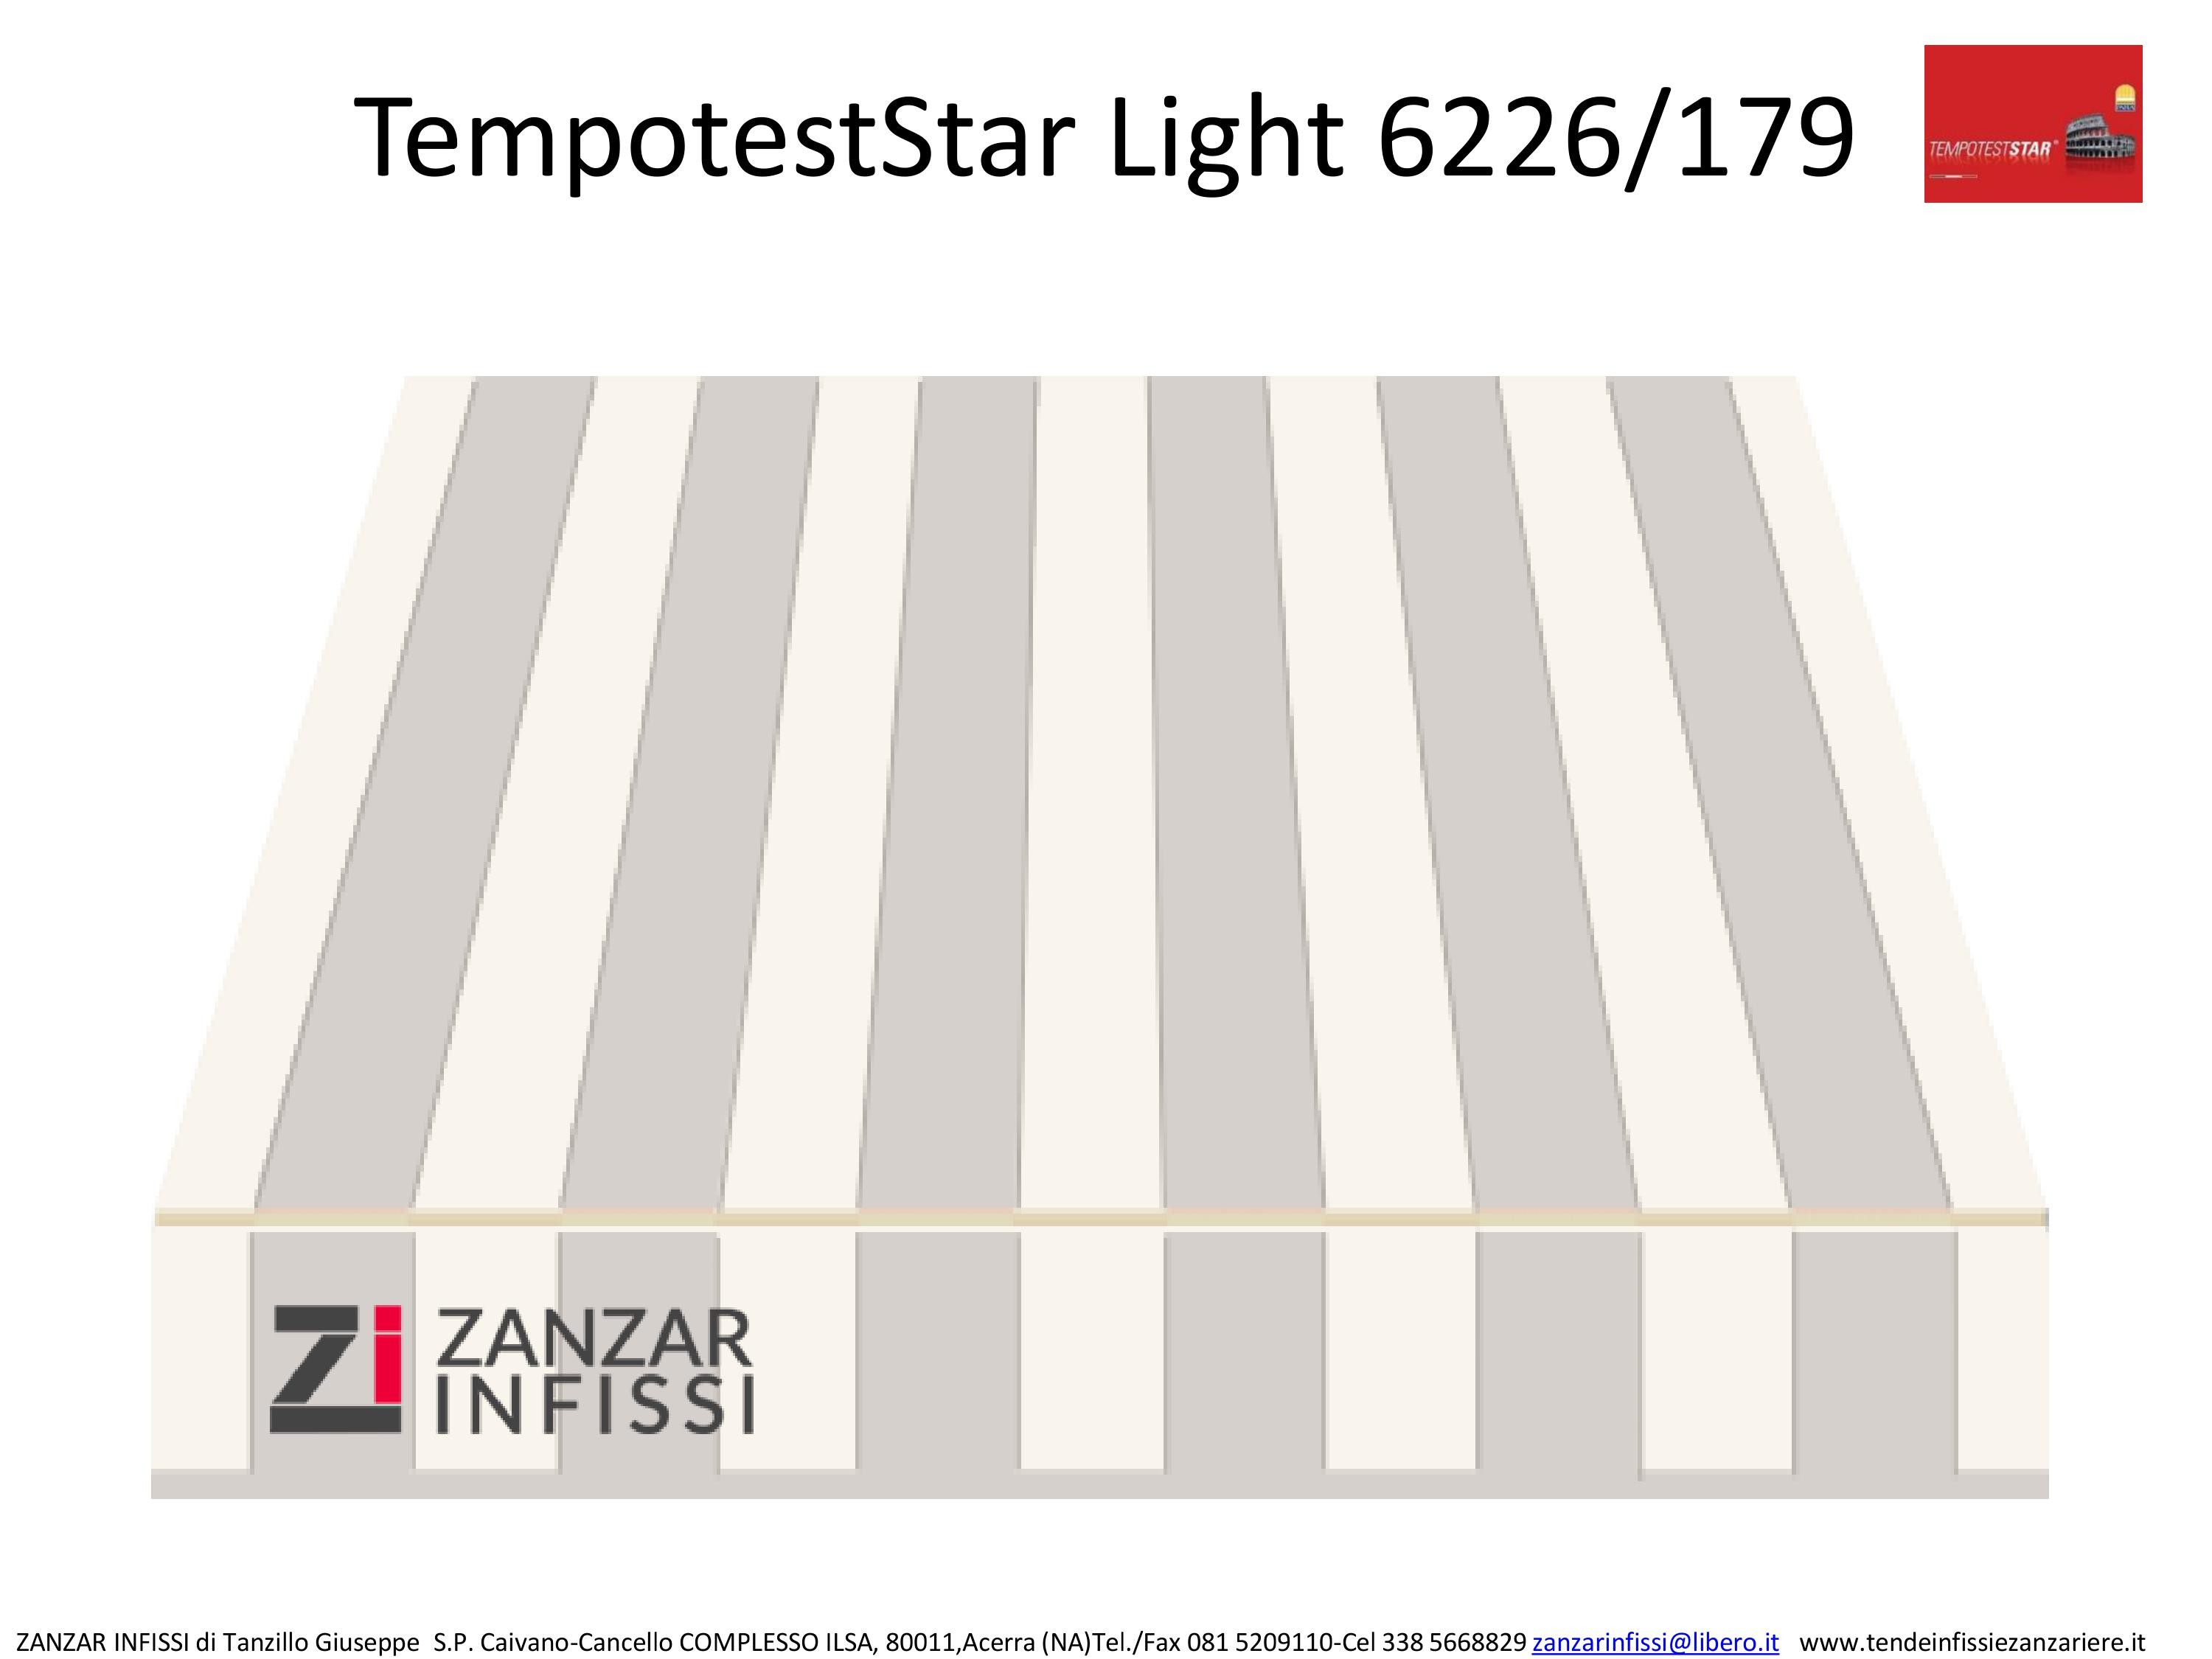 Tempotest star light 6226/179